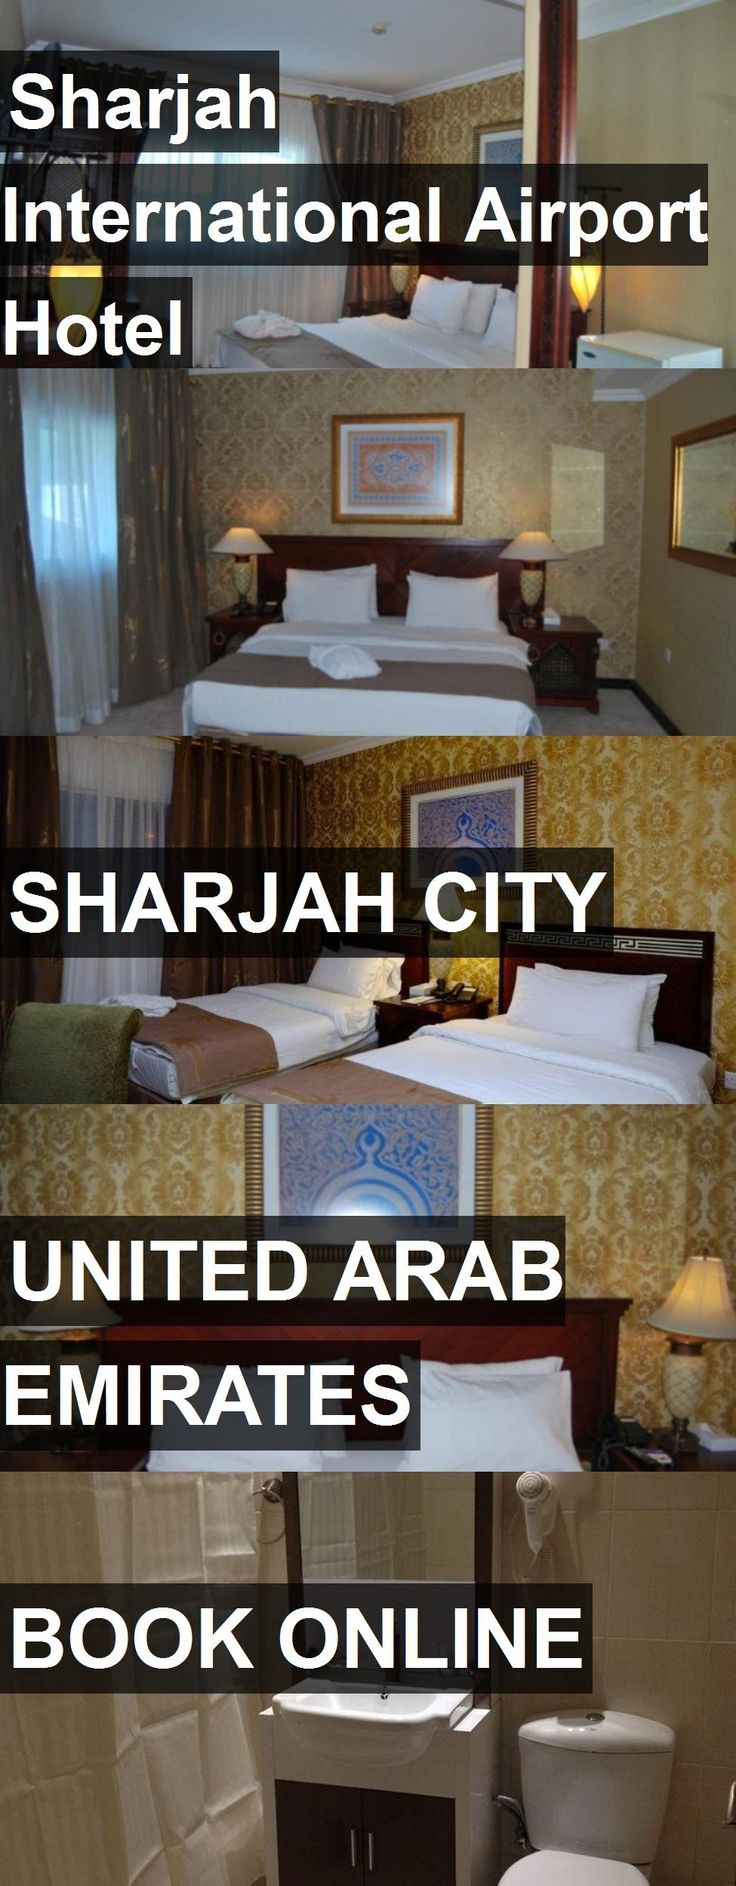 Hotel Sharjah International Airport Hotel in Sharjah City, United Arab Emirates. For more information, photos, reviews and best prices please follow the link. #UnitedArabEmirates #SharjahCity #hotel #travel #vacation